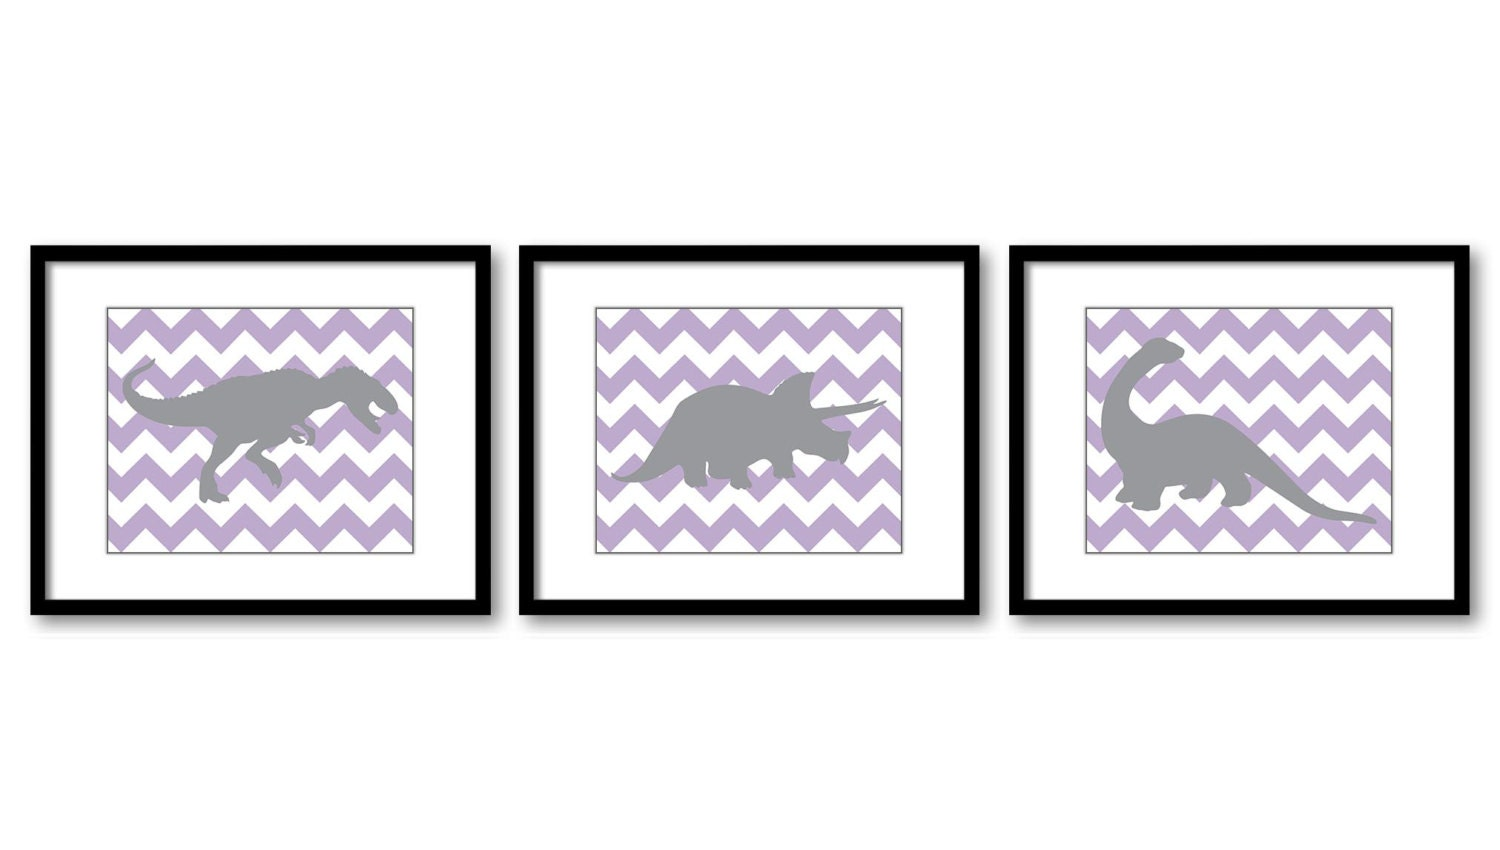 Dinosaur Nursery Art Dinosaurs Prints Set of 3 Prints Purple Grey Chevron Tyrannosaurus Rex Tricerat